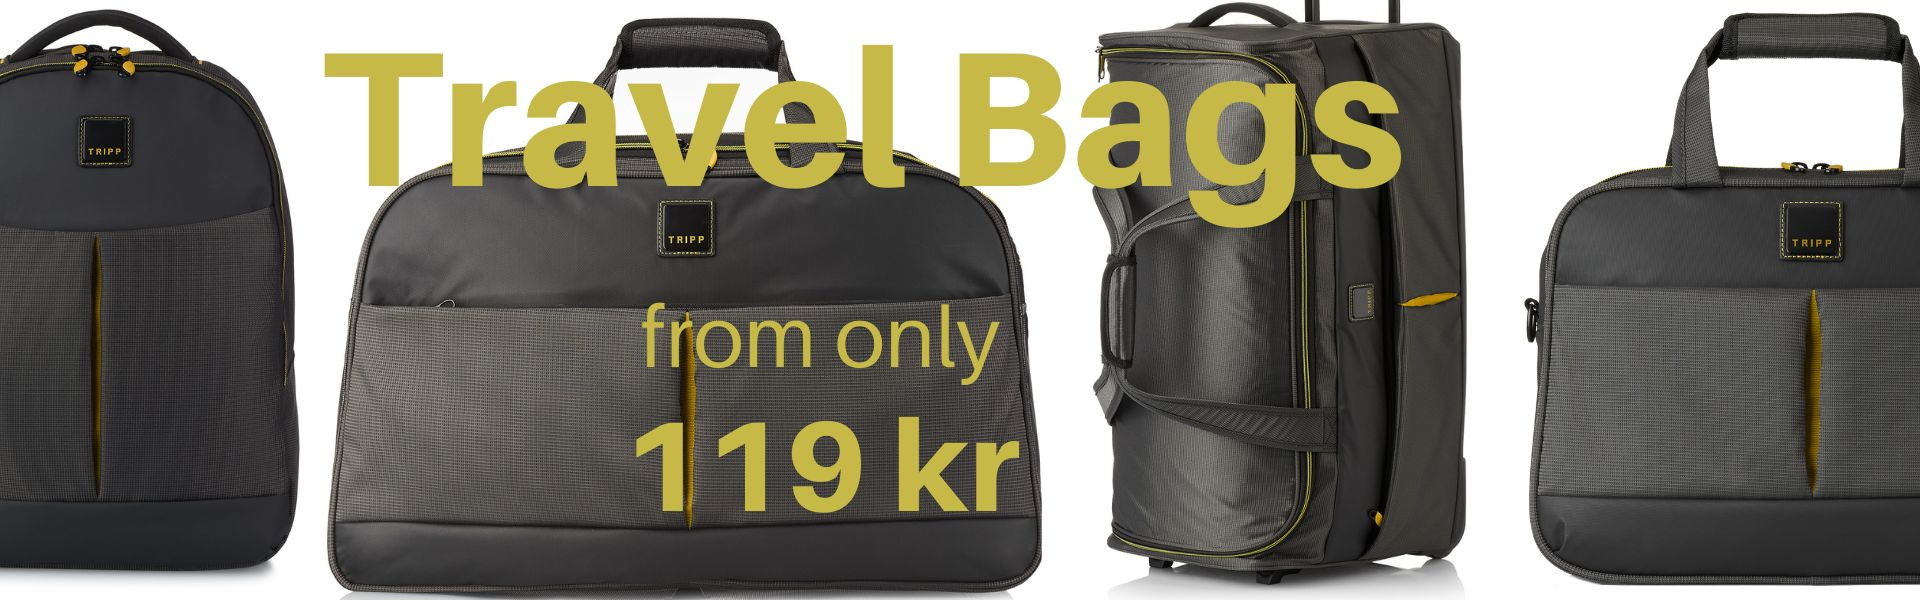 Travel bags from 119 kr